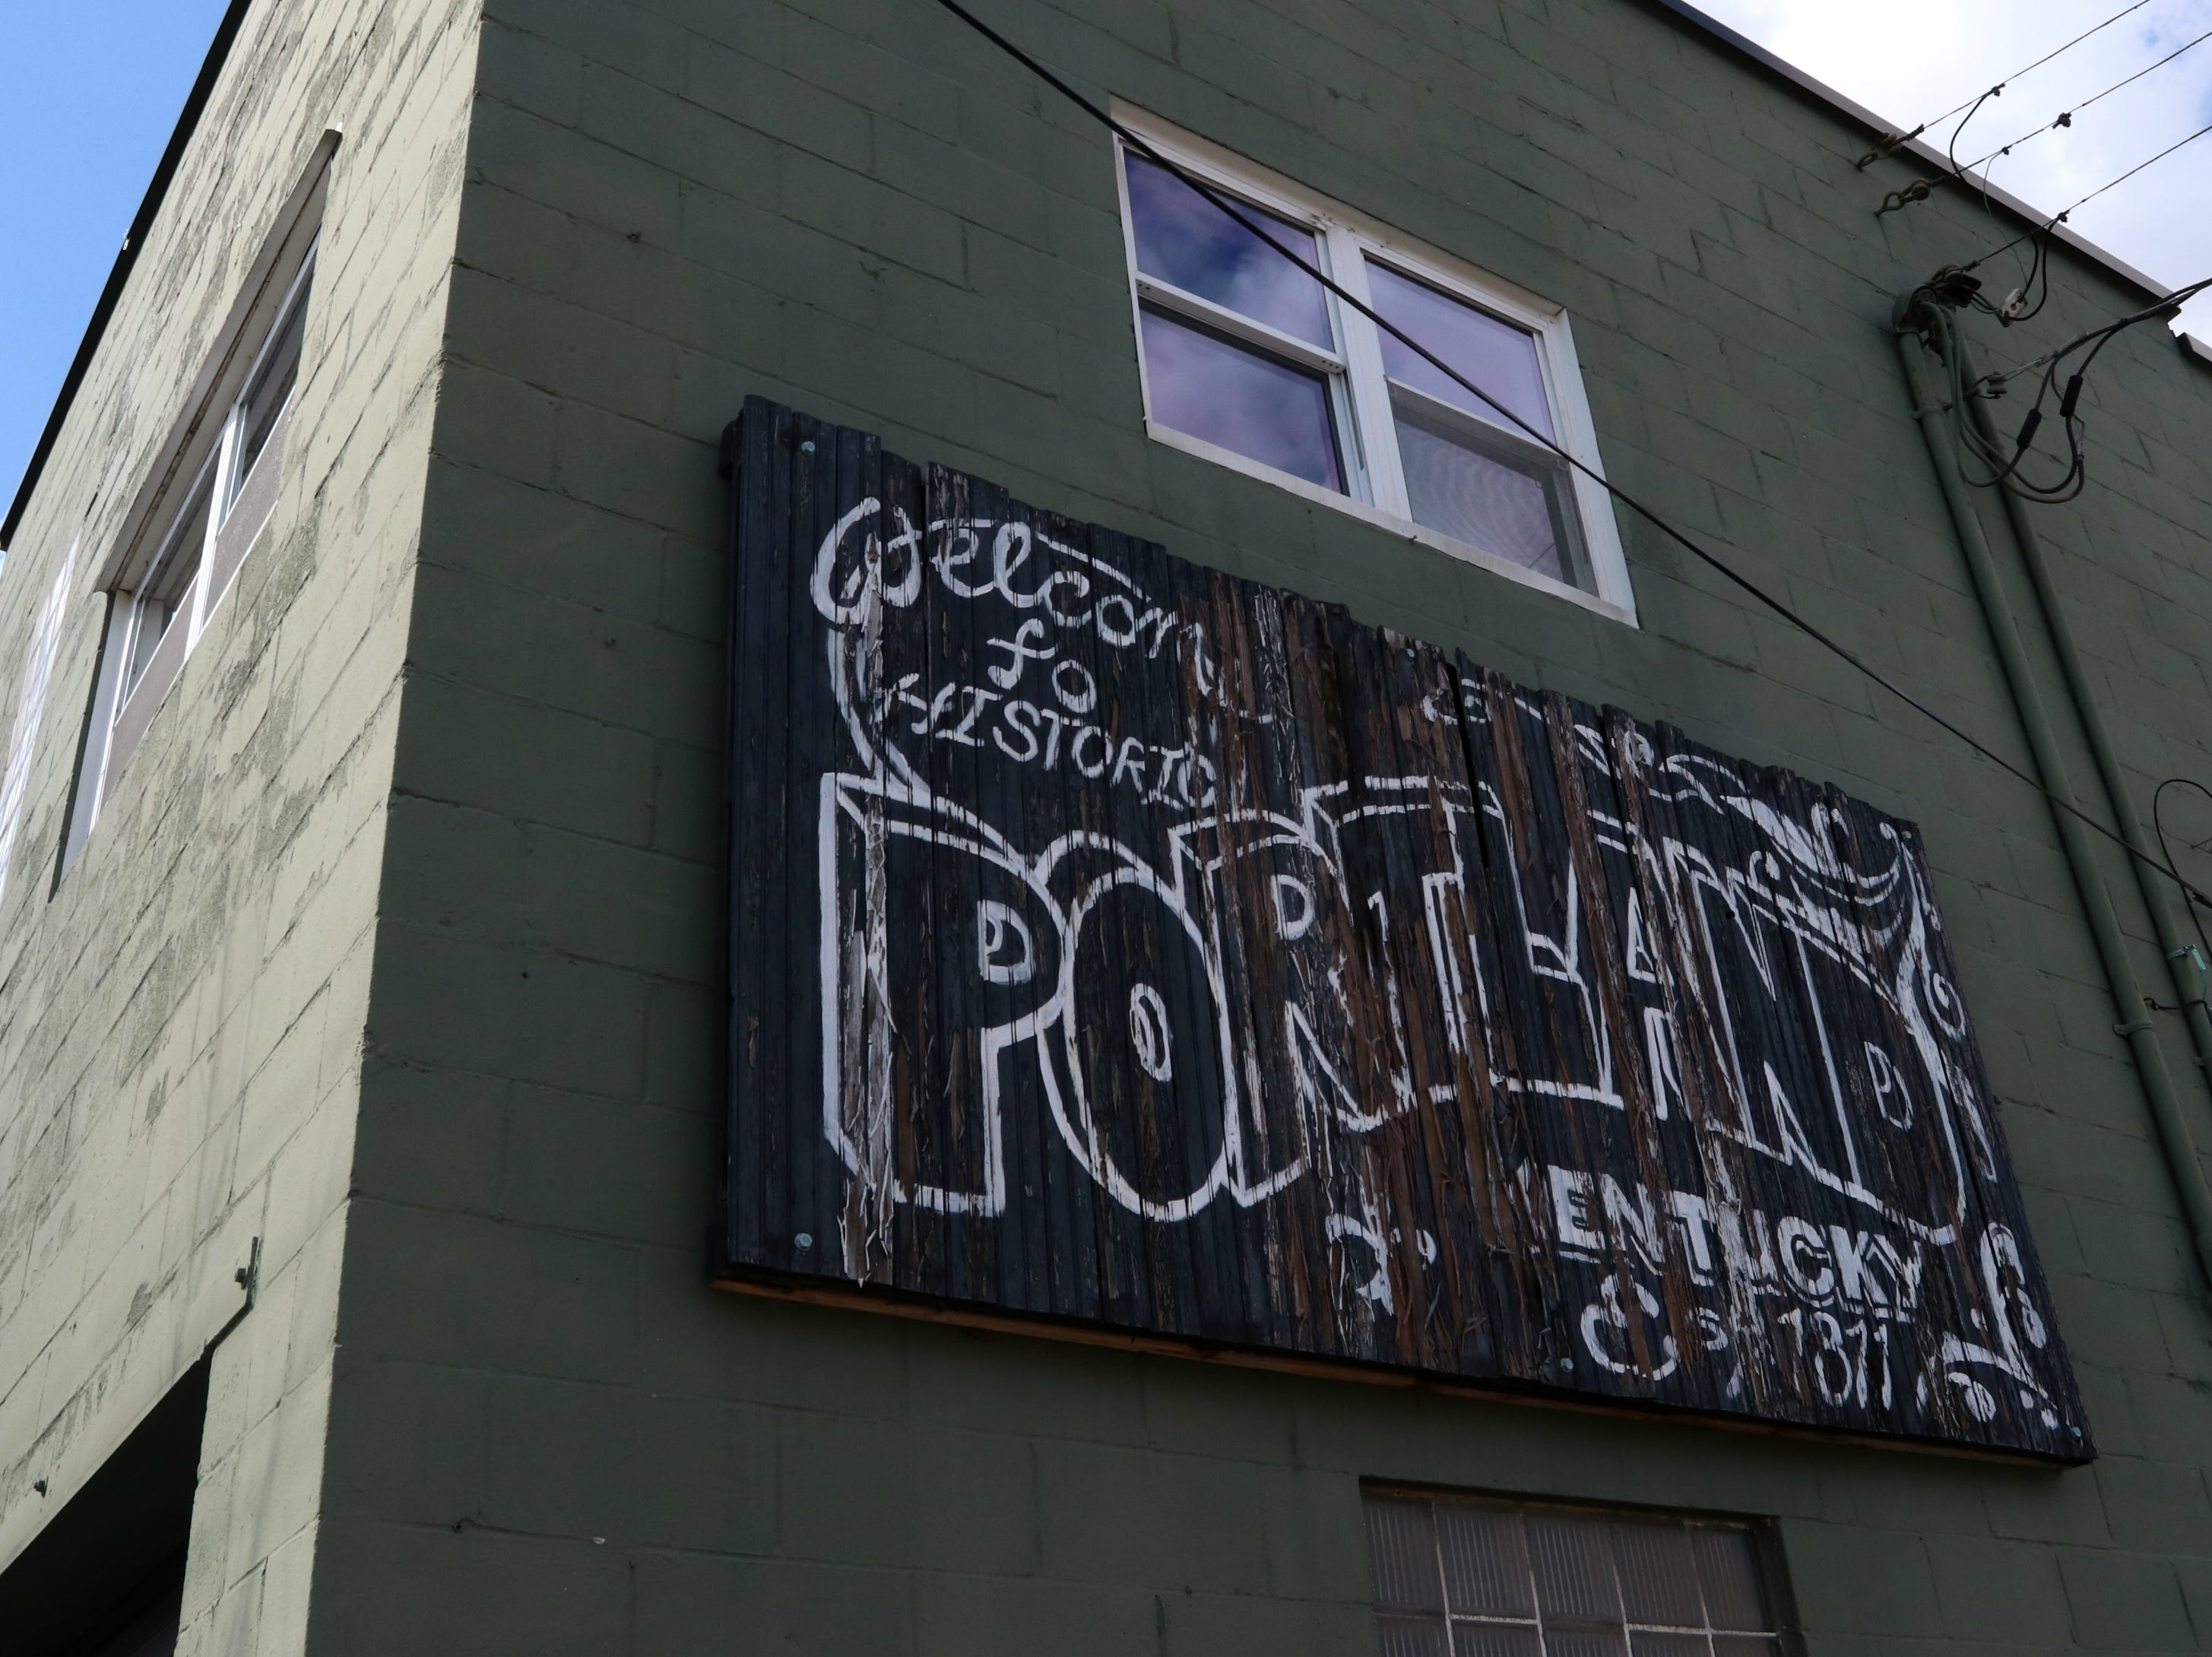 A sign welcoming people to Louisville's Portland neighborhood hangs on the wall of a building on west Main Street.